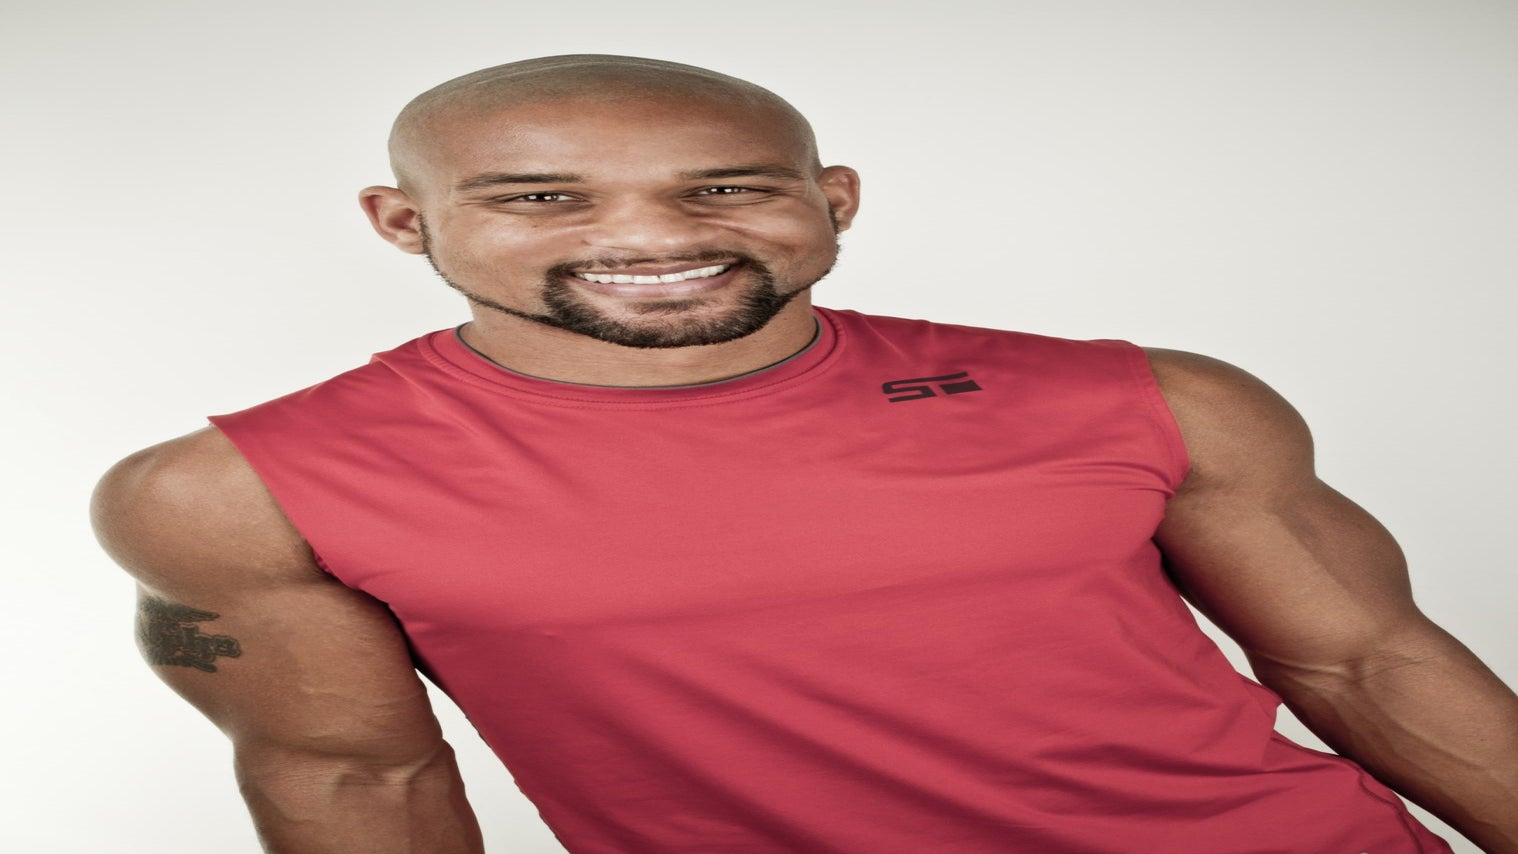 Shaun T Wants to Help You 'Define Your Life' at ESSENCE Fest